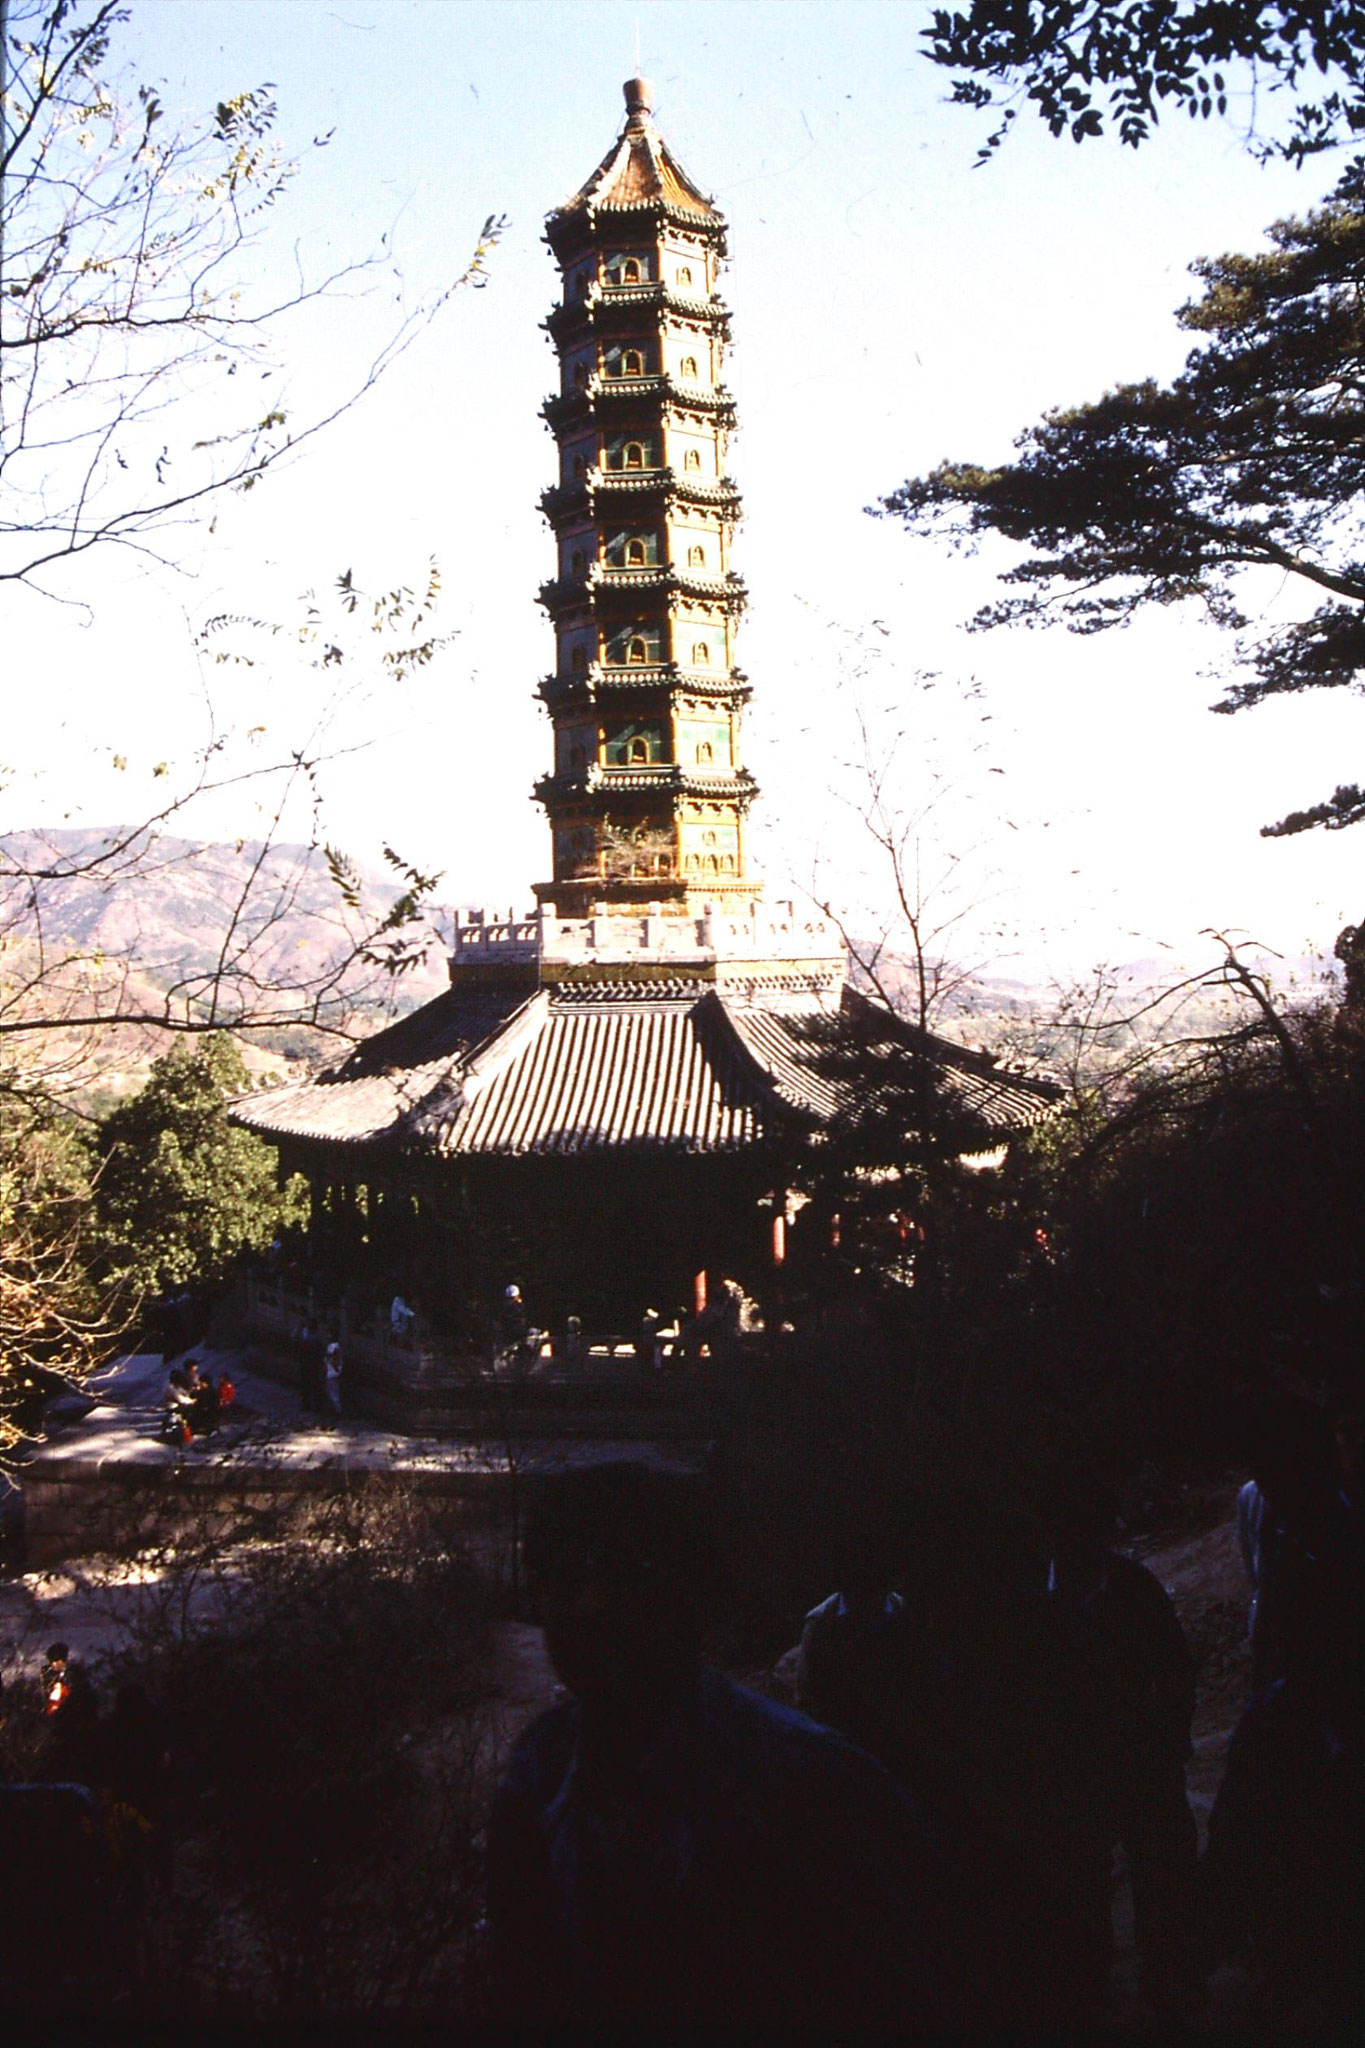 6/11/1988: 28: outing to Xiangshan, pagoda with Beijing in distance